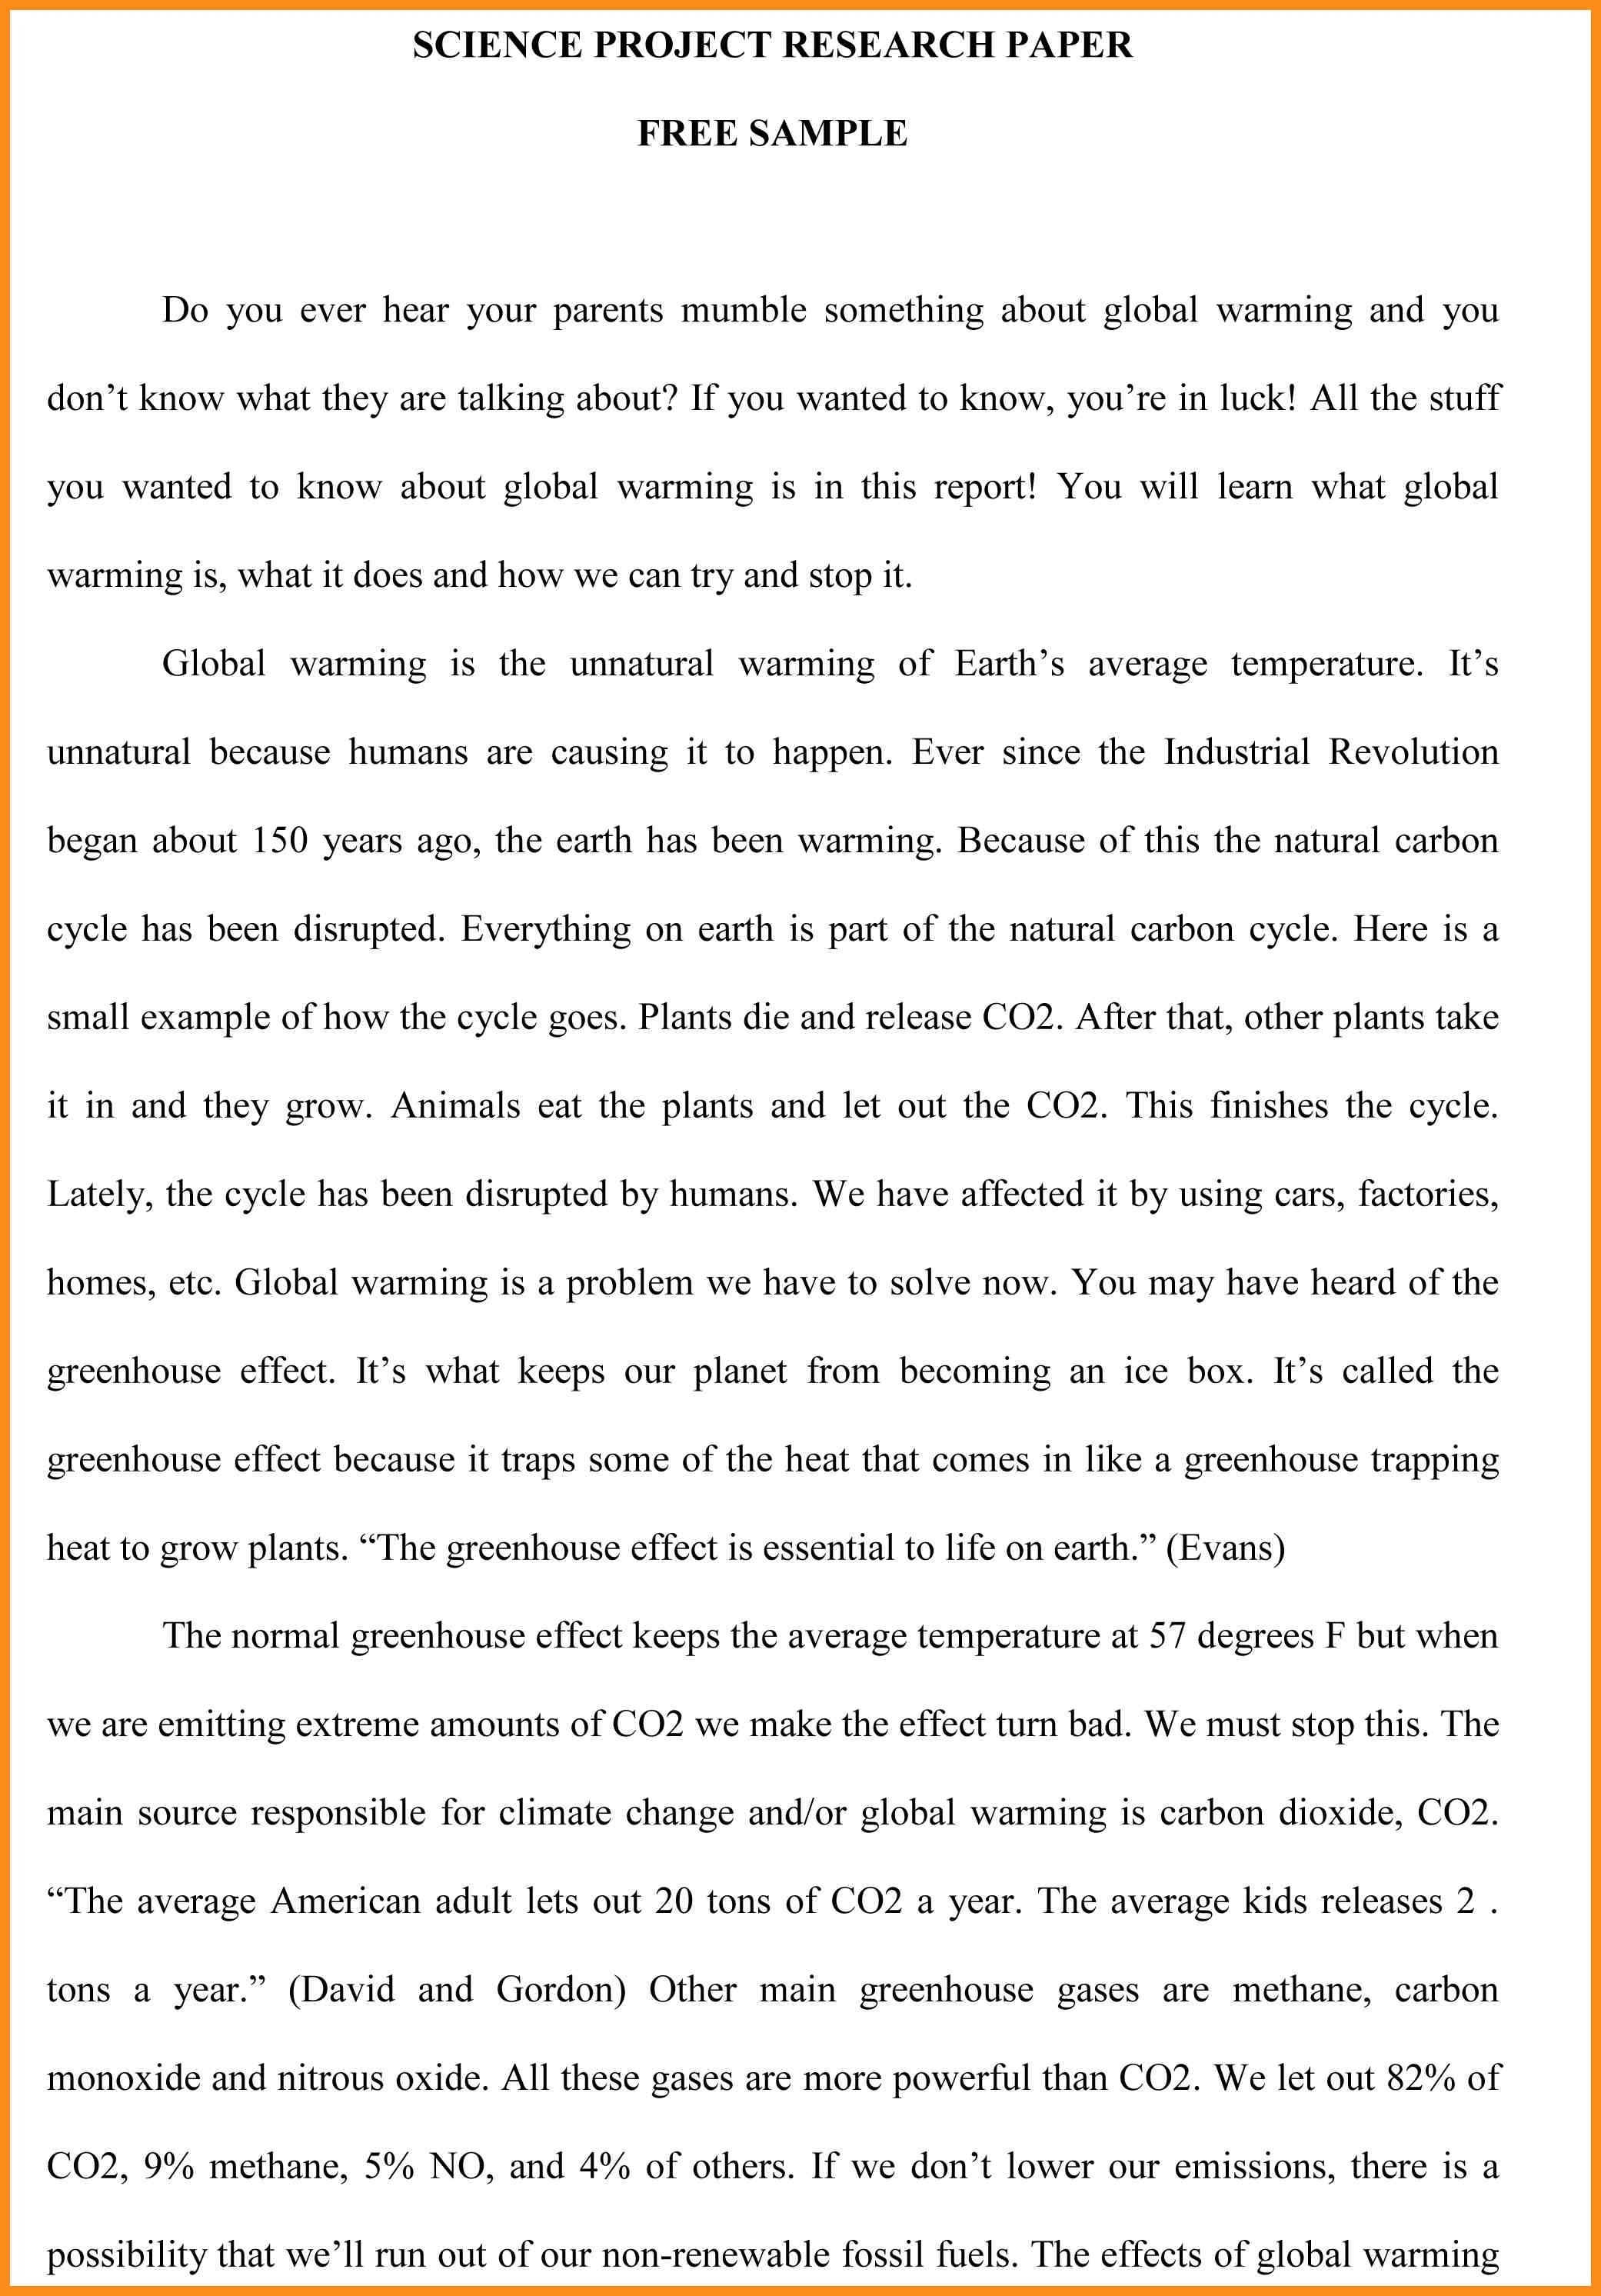 003 Good Essay Topics How To Write English An About Best Argumentative Inside Interesting Arg Funny For College Students Middle School High Fun Cool Top Prompts 7th Graders Pdf Full